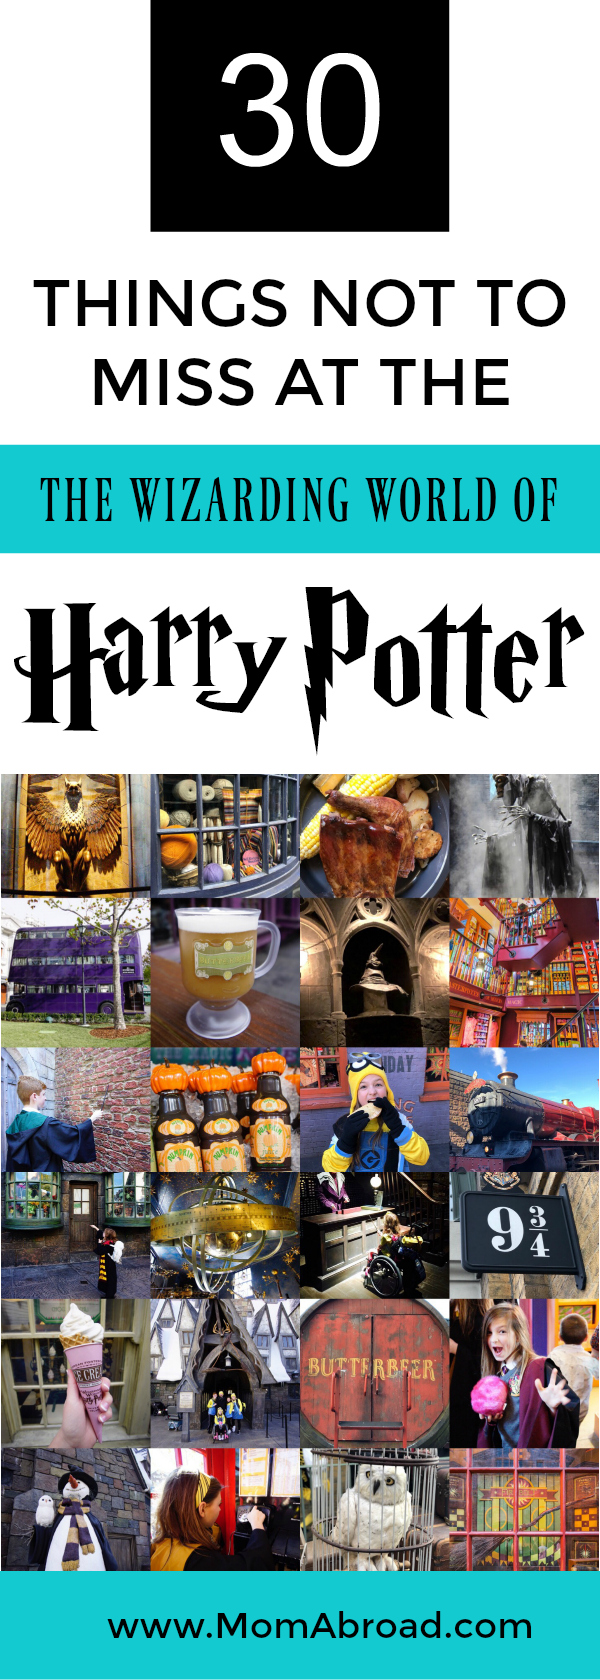 6bf96c4b8 There is so much magic at the Wizarding World of Harry Potter in Orlando,  Florida